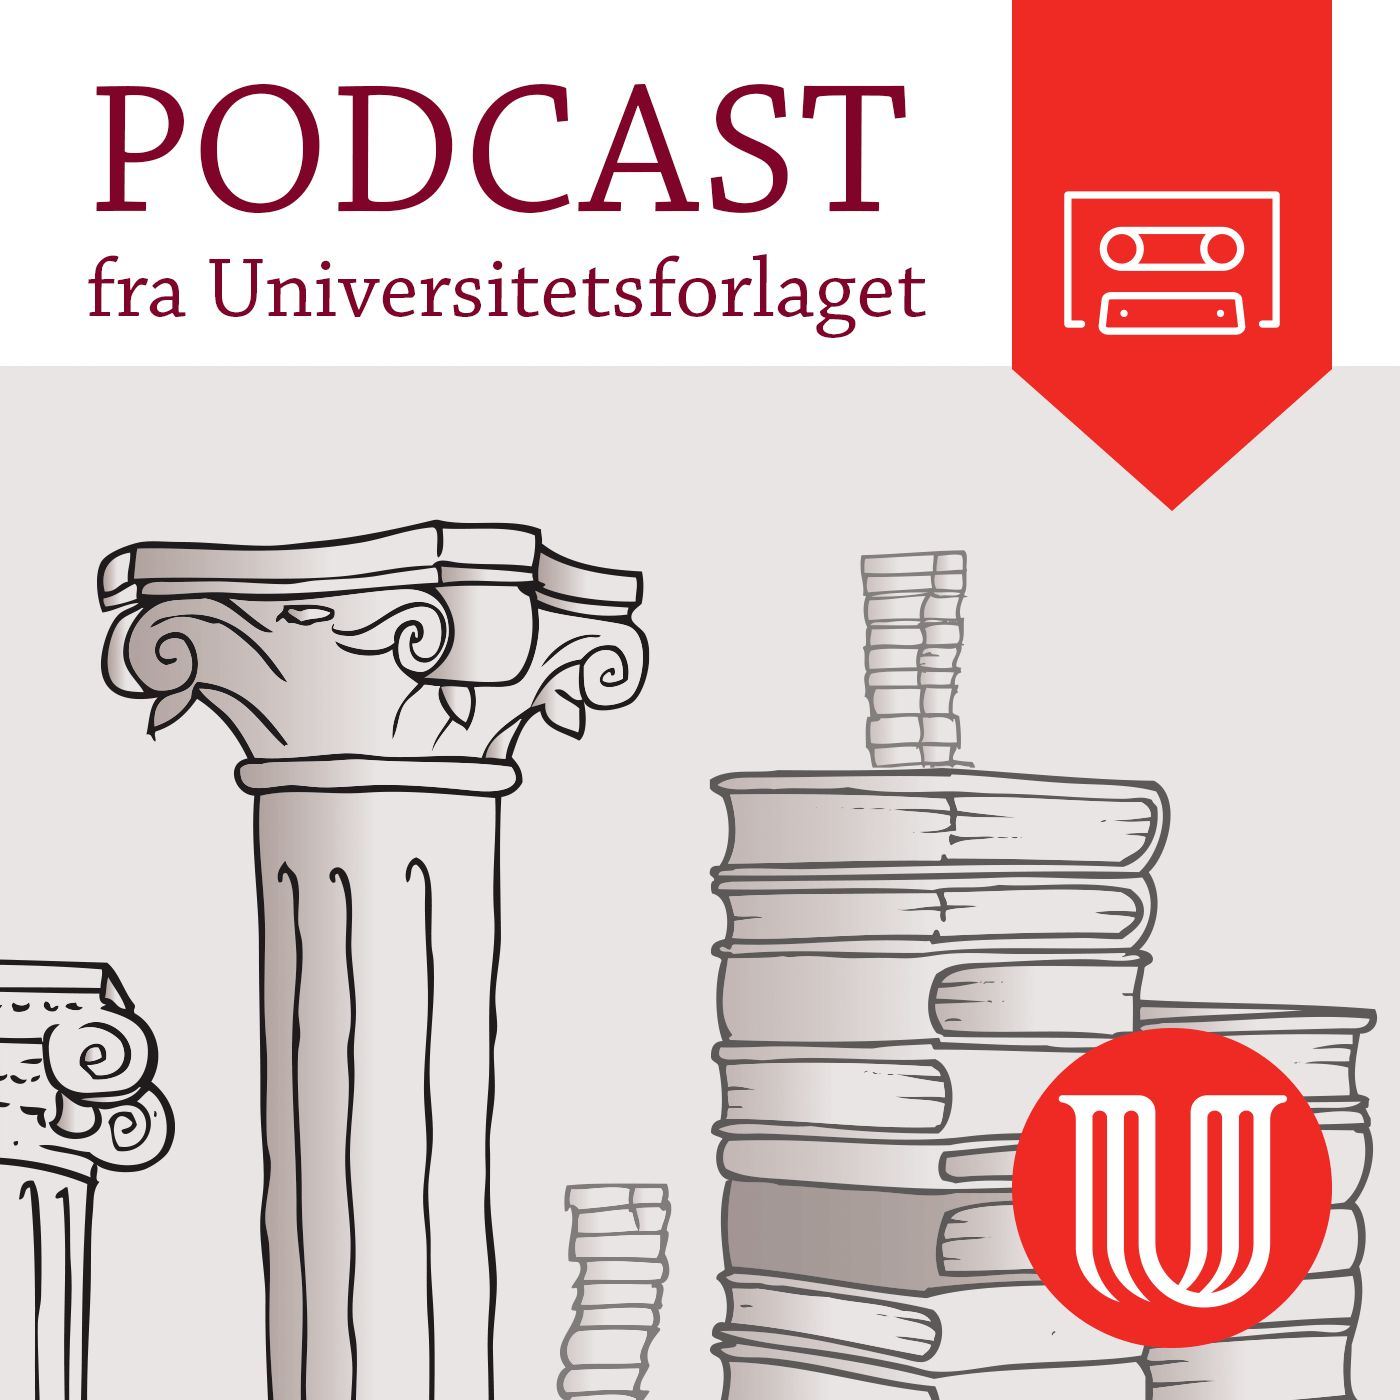 Universitetsforlagets podcast